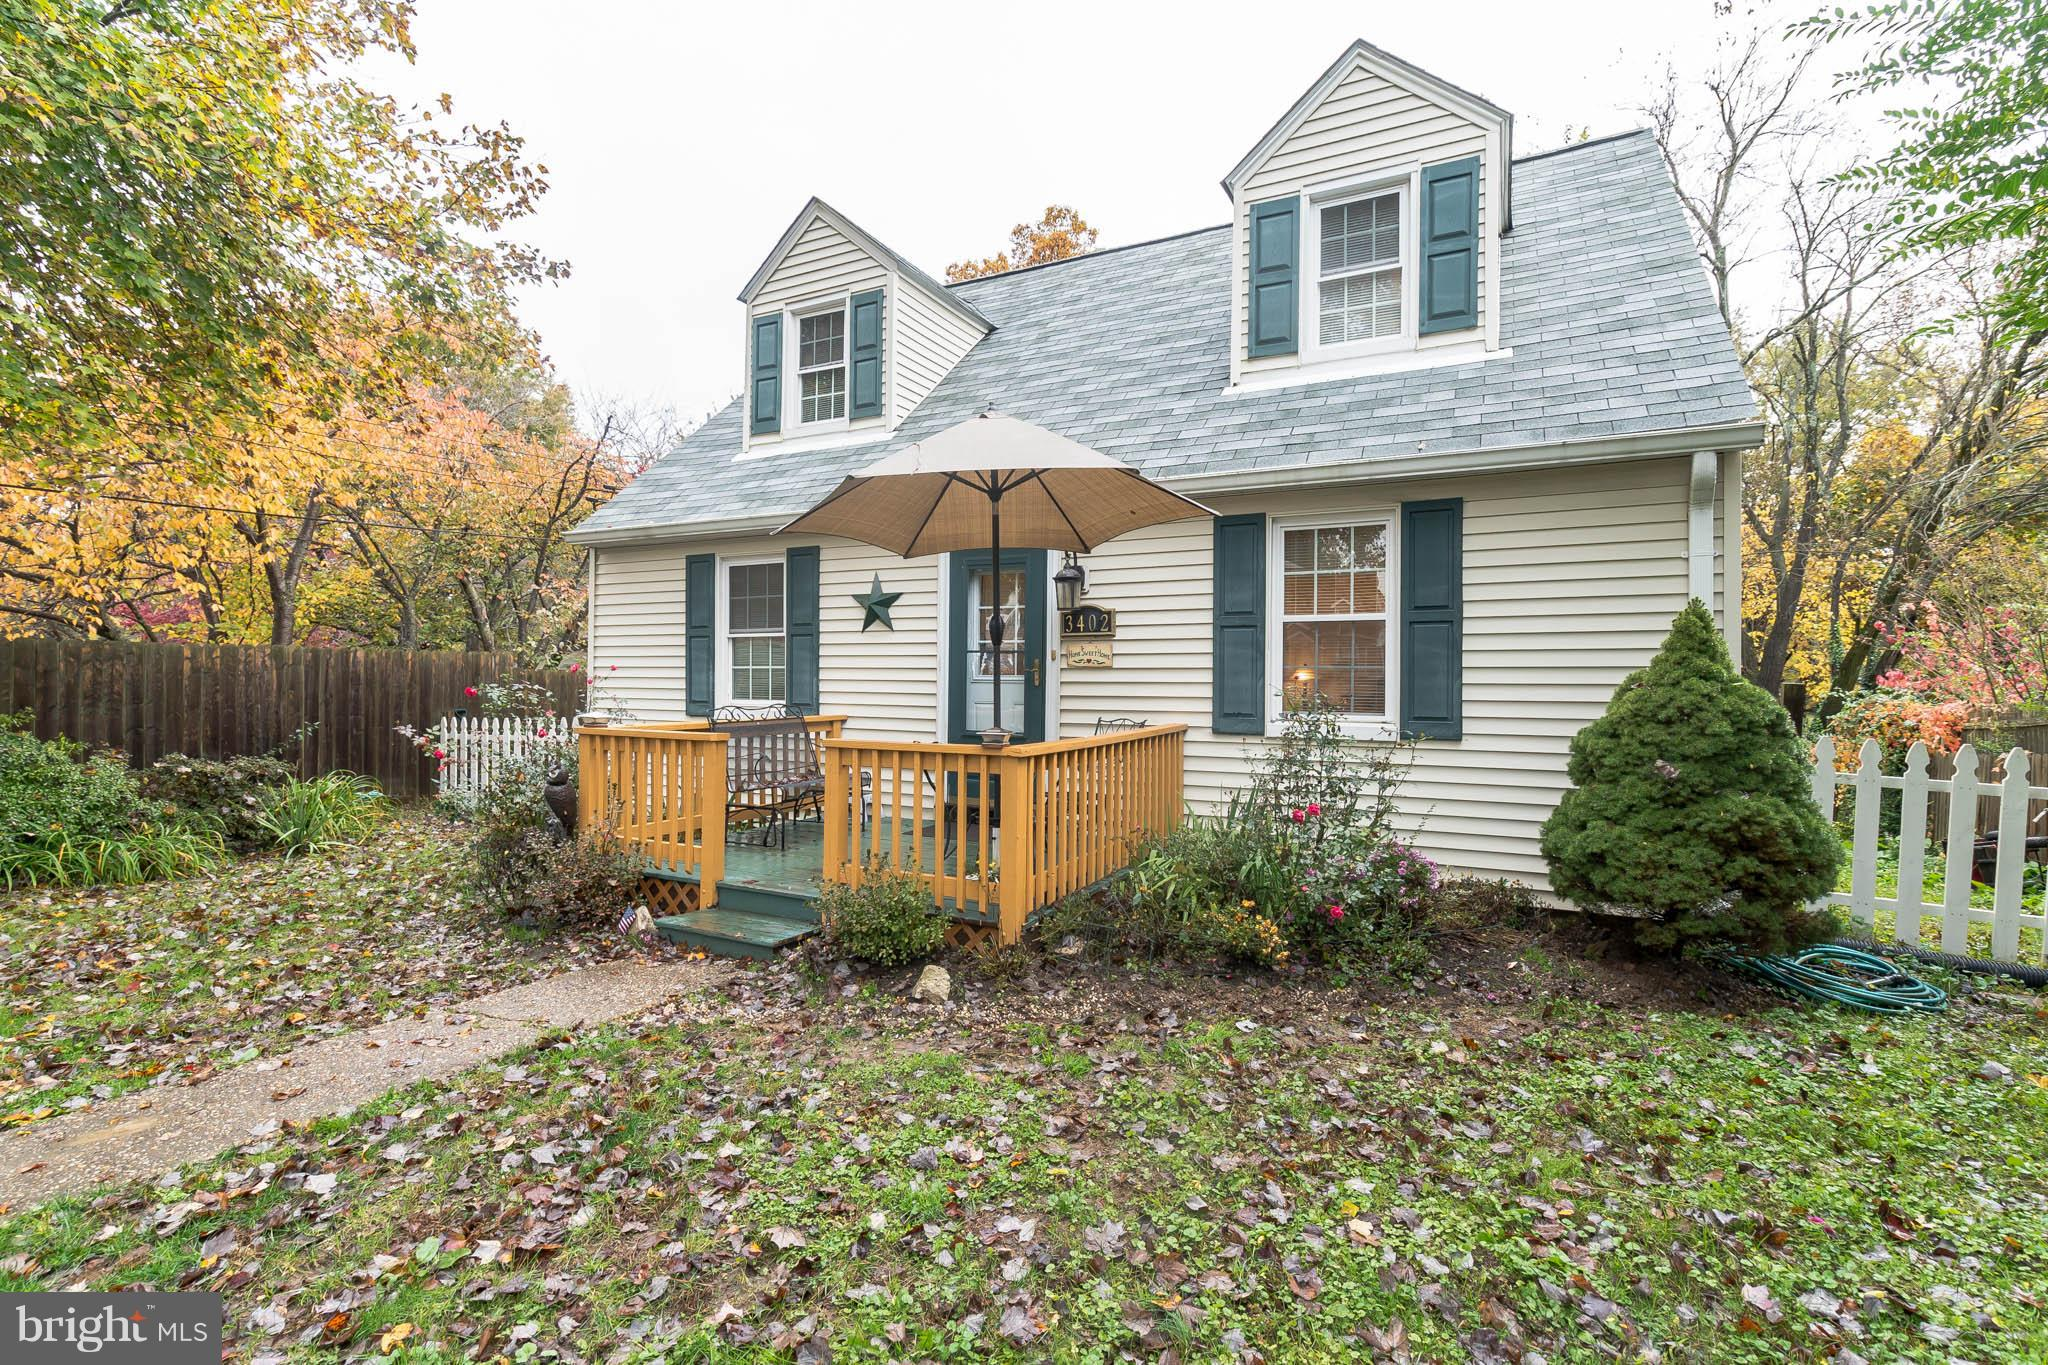 Here's a great opportunity to live close to everything in Groveton! This quaint 4 BR Cape Cod is steps away from shopping and dining, and less than 2.5 miles from Huntington Metro. House features hardwood floors throughout and updated windows. The fully fenced-in quarter-acre yard is great for pets.